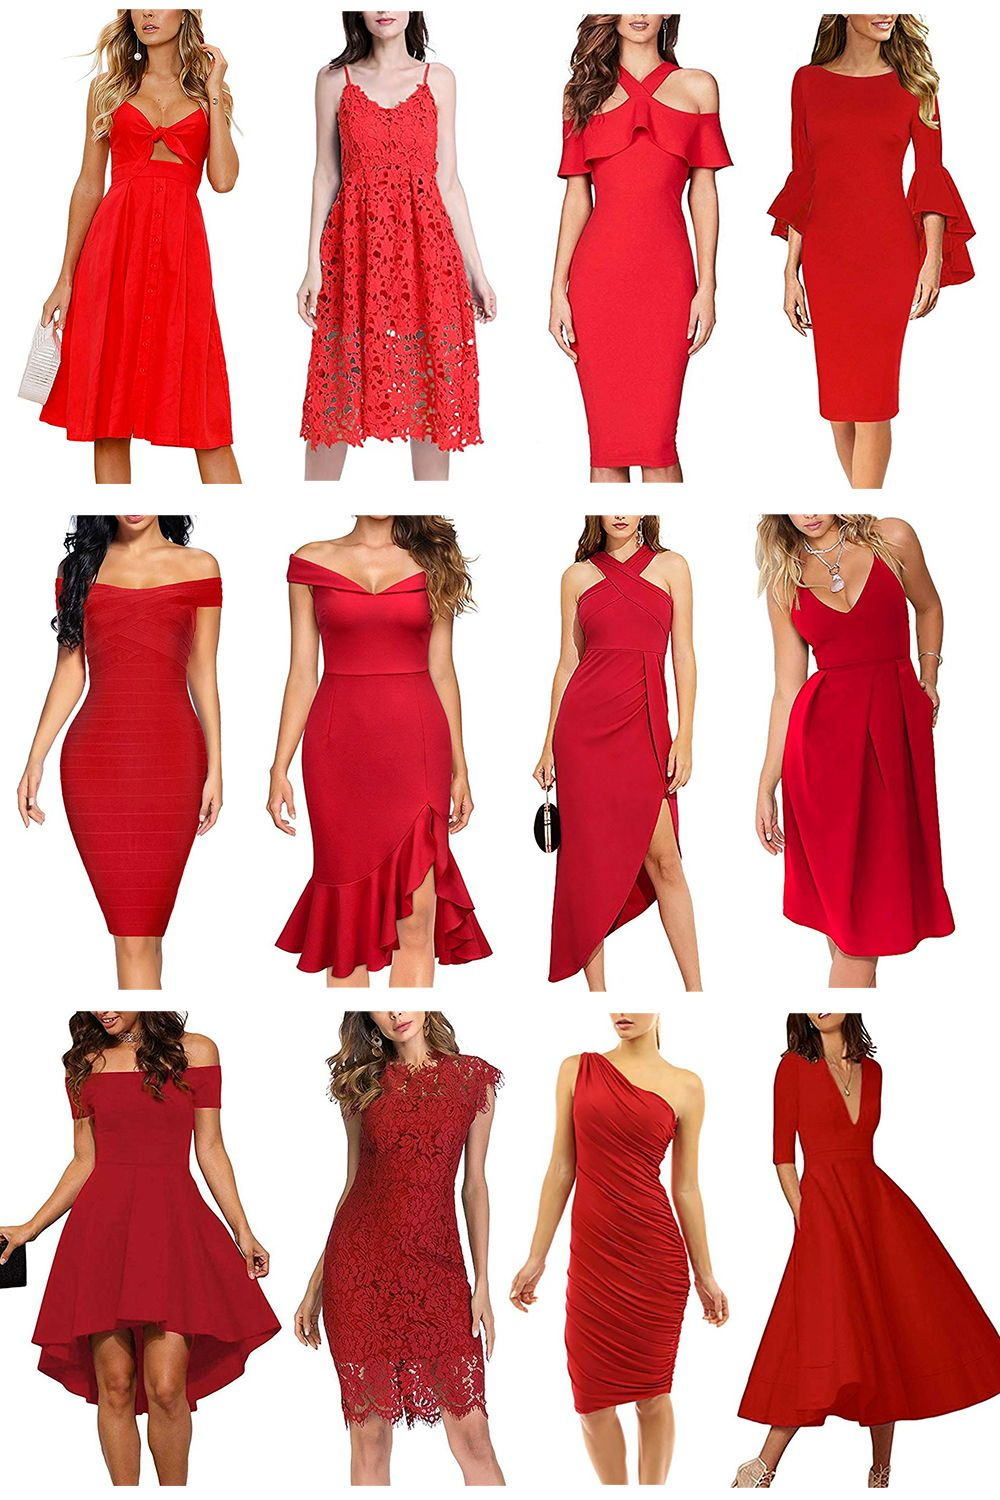 Pink And Red Valentines Day Dresses Under 50 Diary Of A Debutante Red Cocktail Dress Valentines Day Dresses Trendy Cocktail Dresses [ 1500 x 1000 Pixel ]